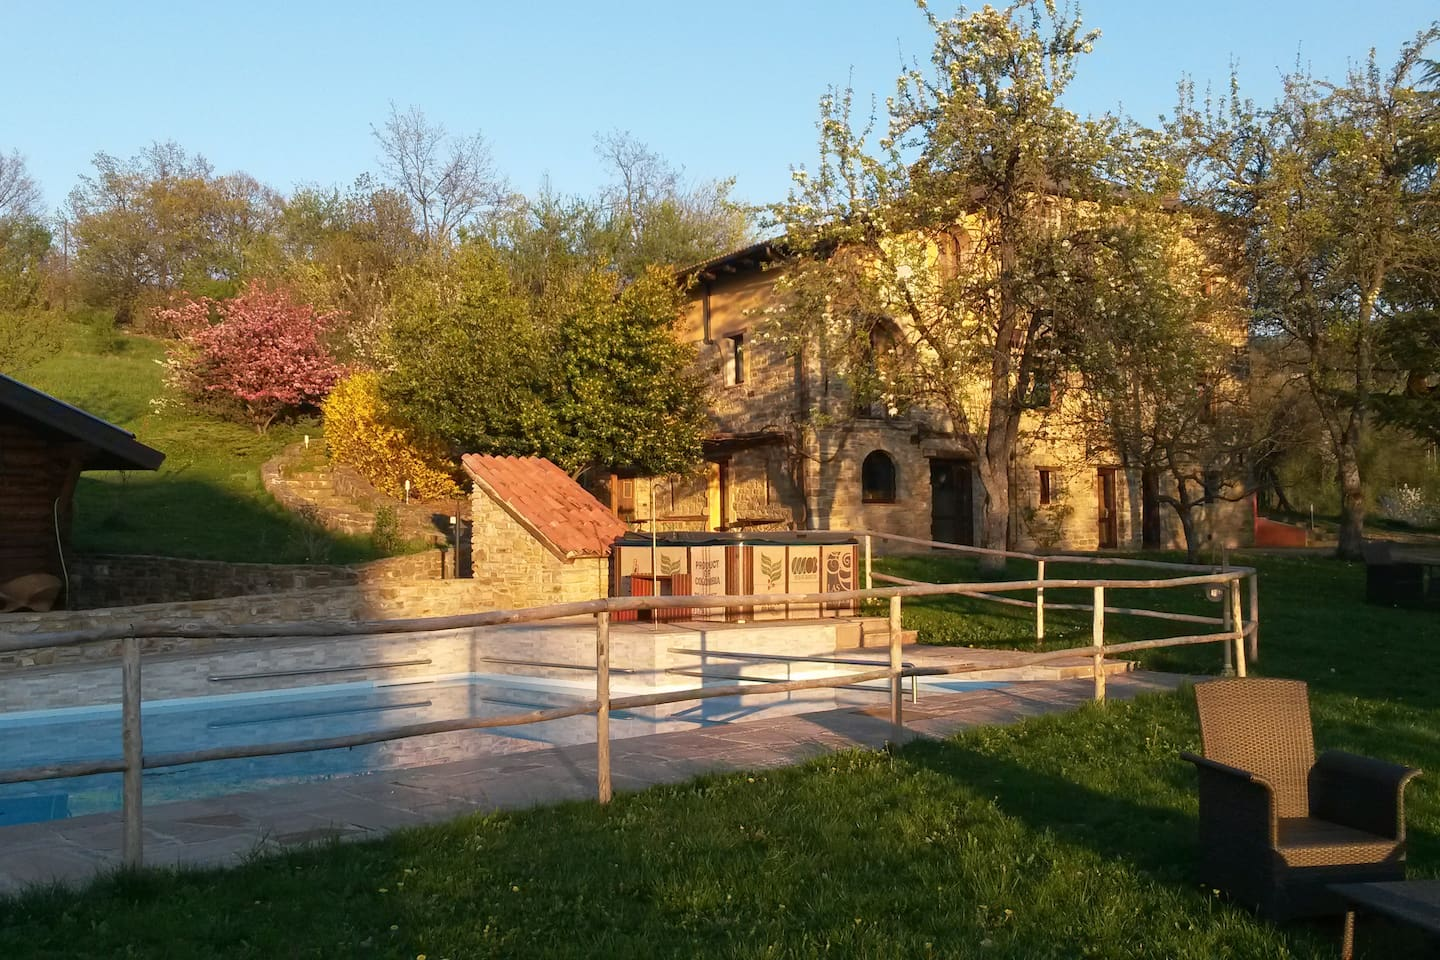 the stone house and the pool